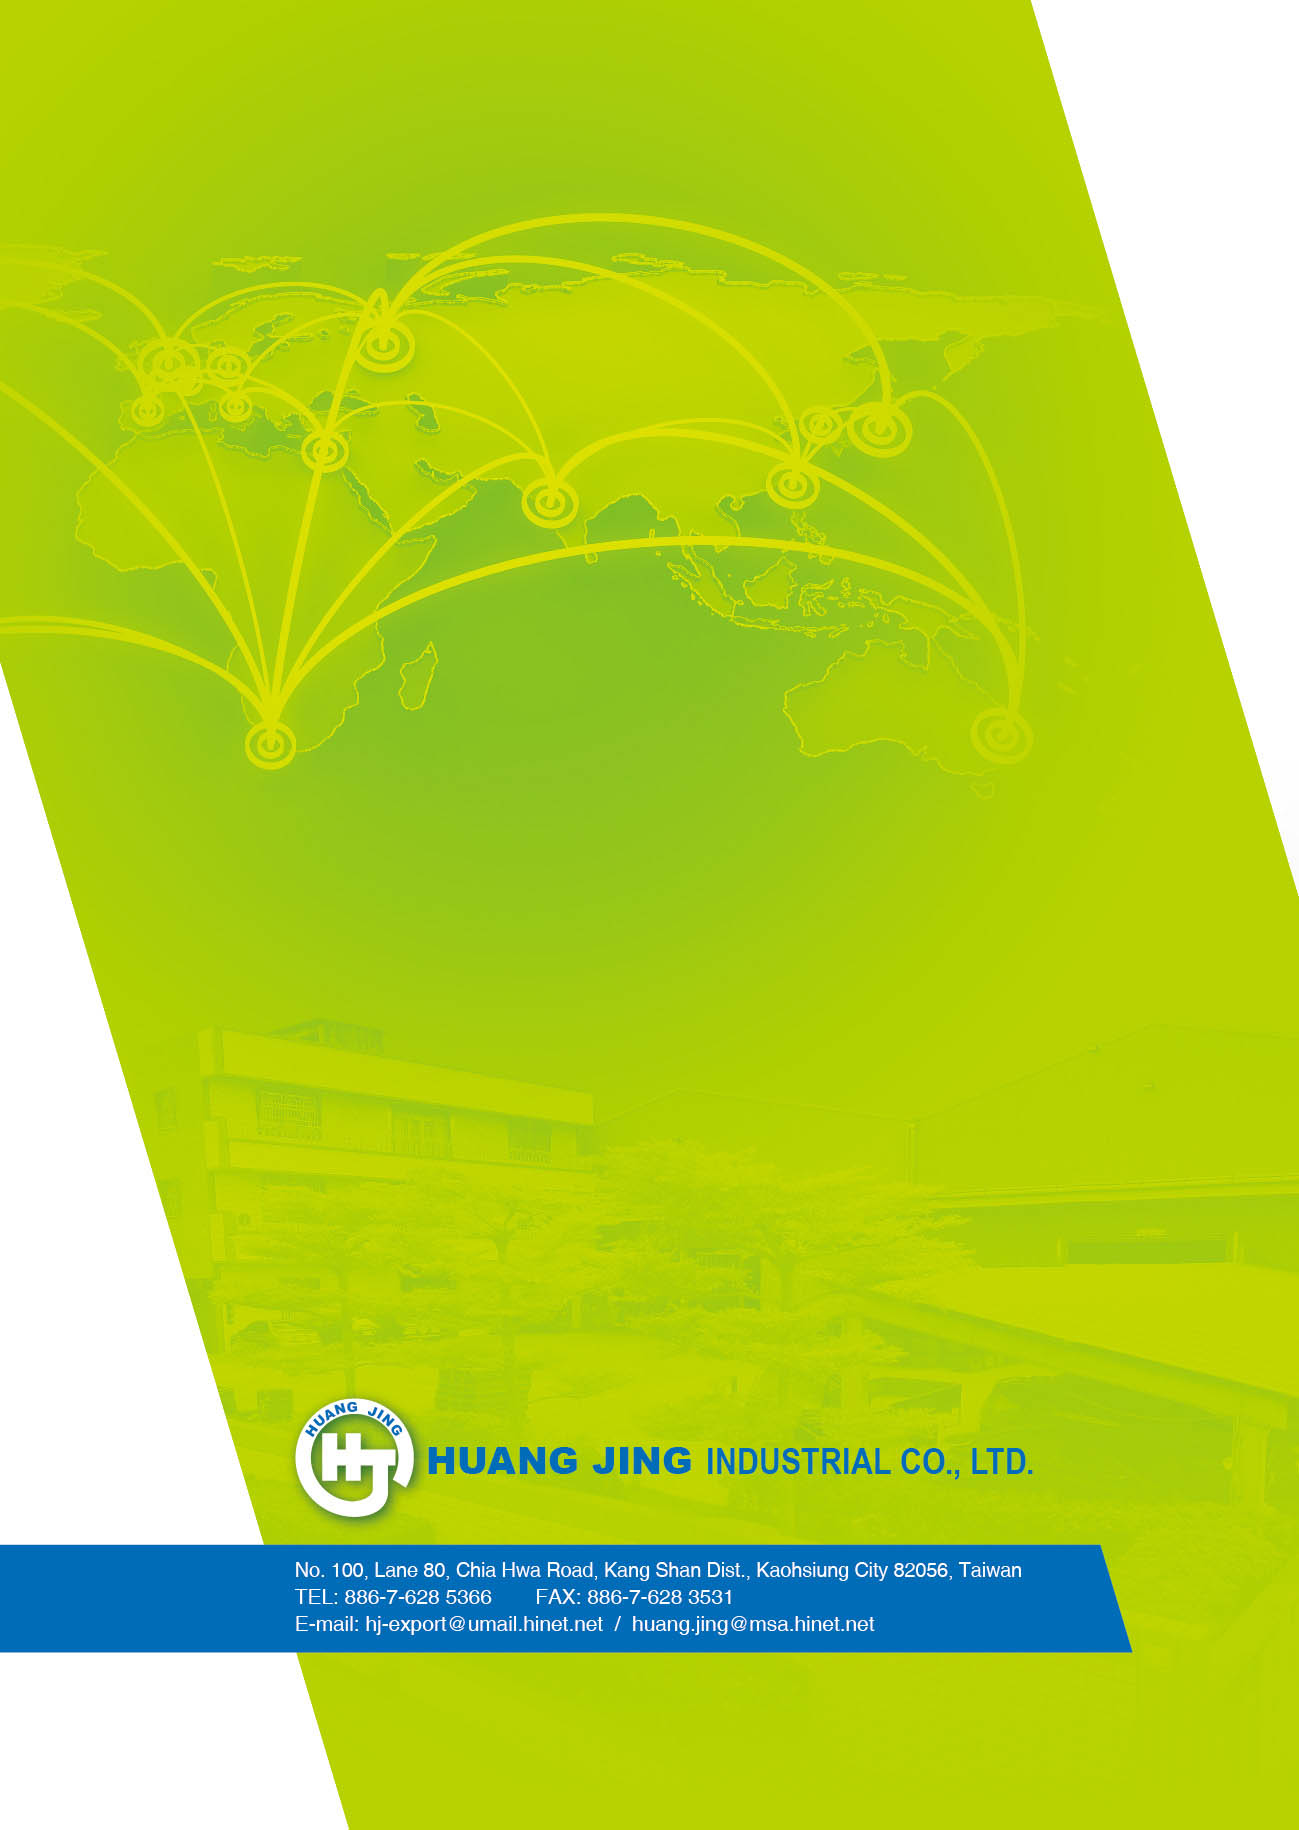 HUANG JING INDUSTRIAL CO., LTD.  Online Catalogues